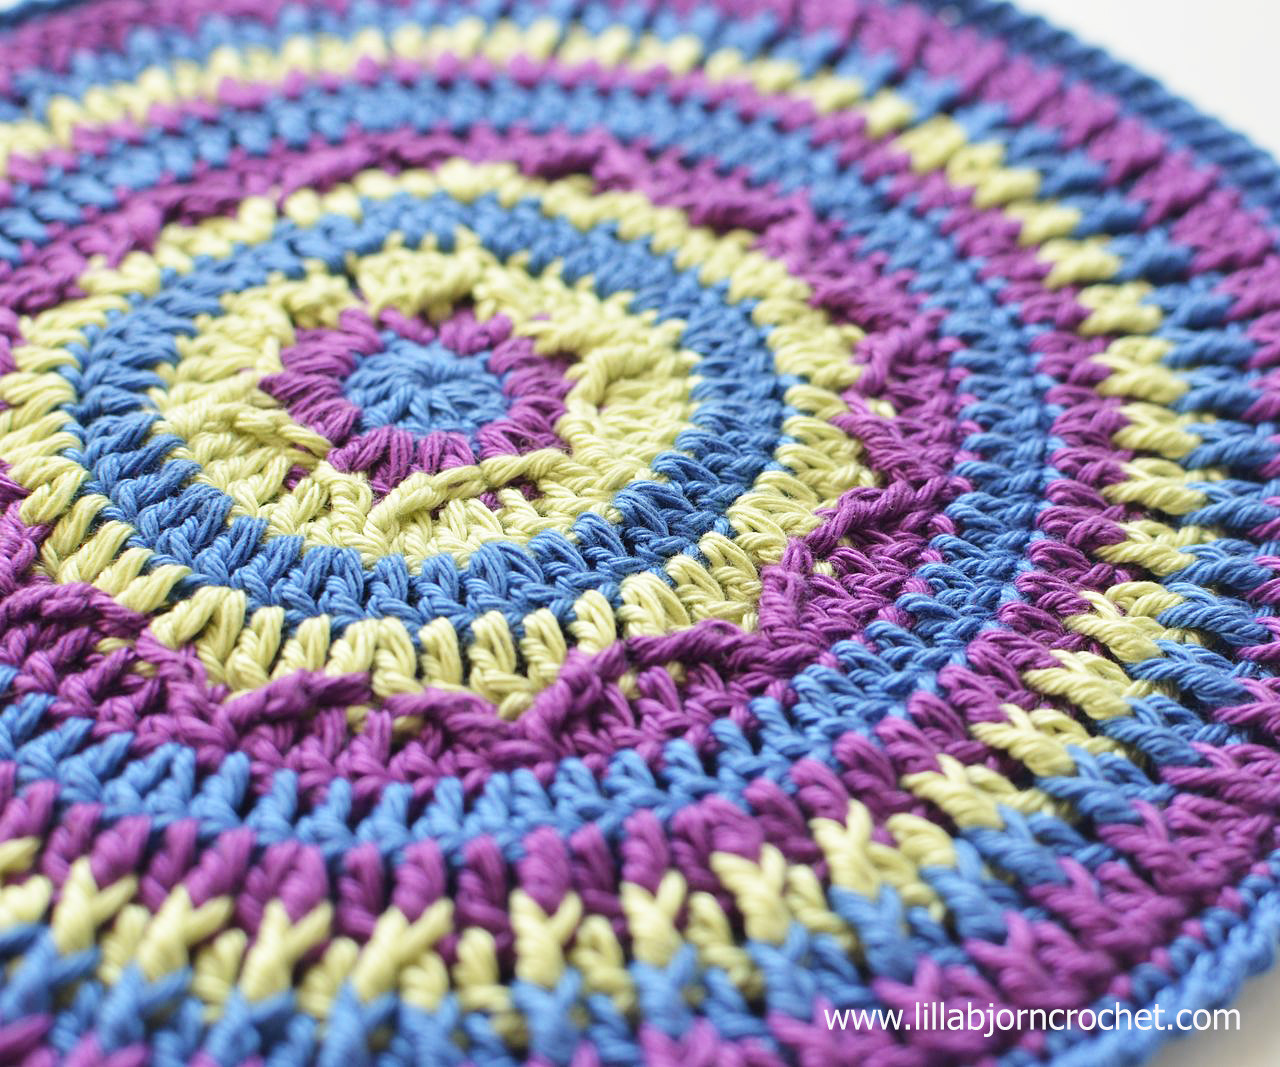 Crochet Potholder Pattern Awesome something About northern Lights and Crochet Free Pattern Of Amazing 43 Pictures Crochet Potholder Pattern